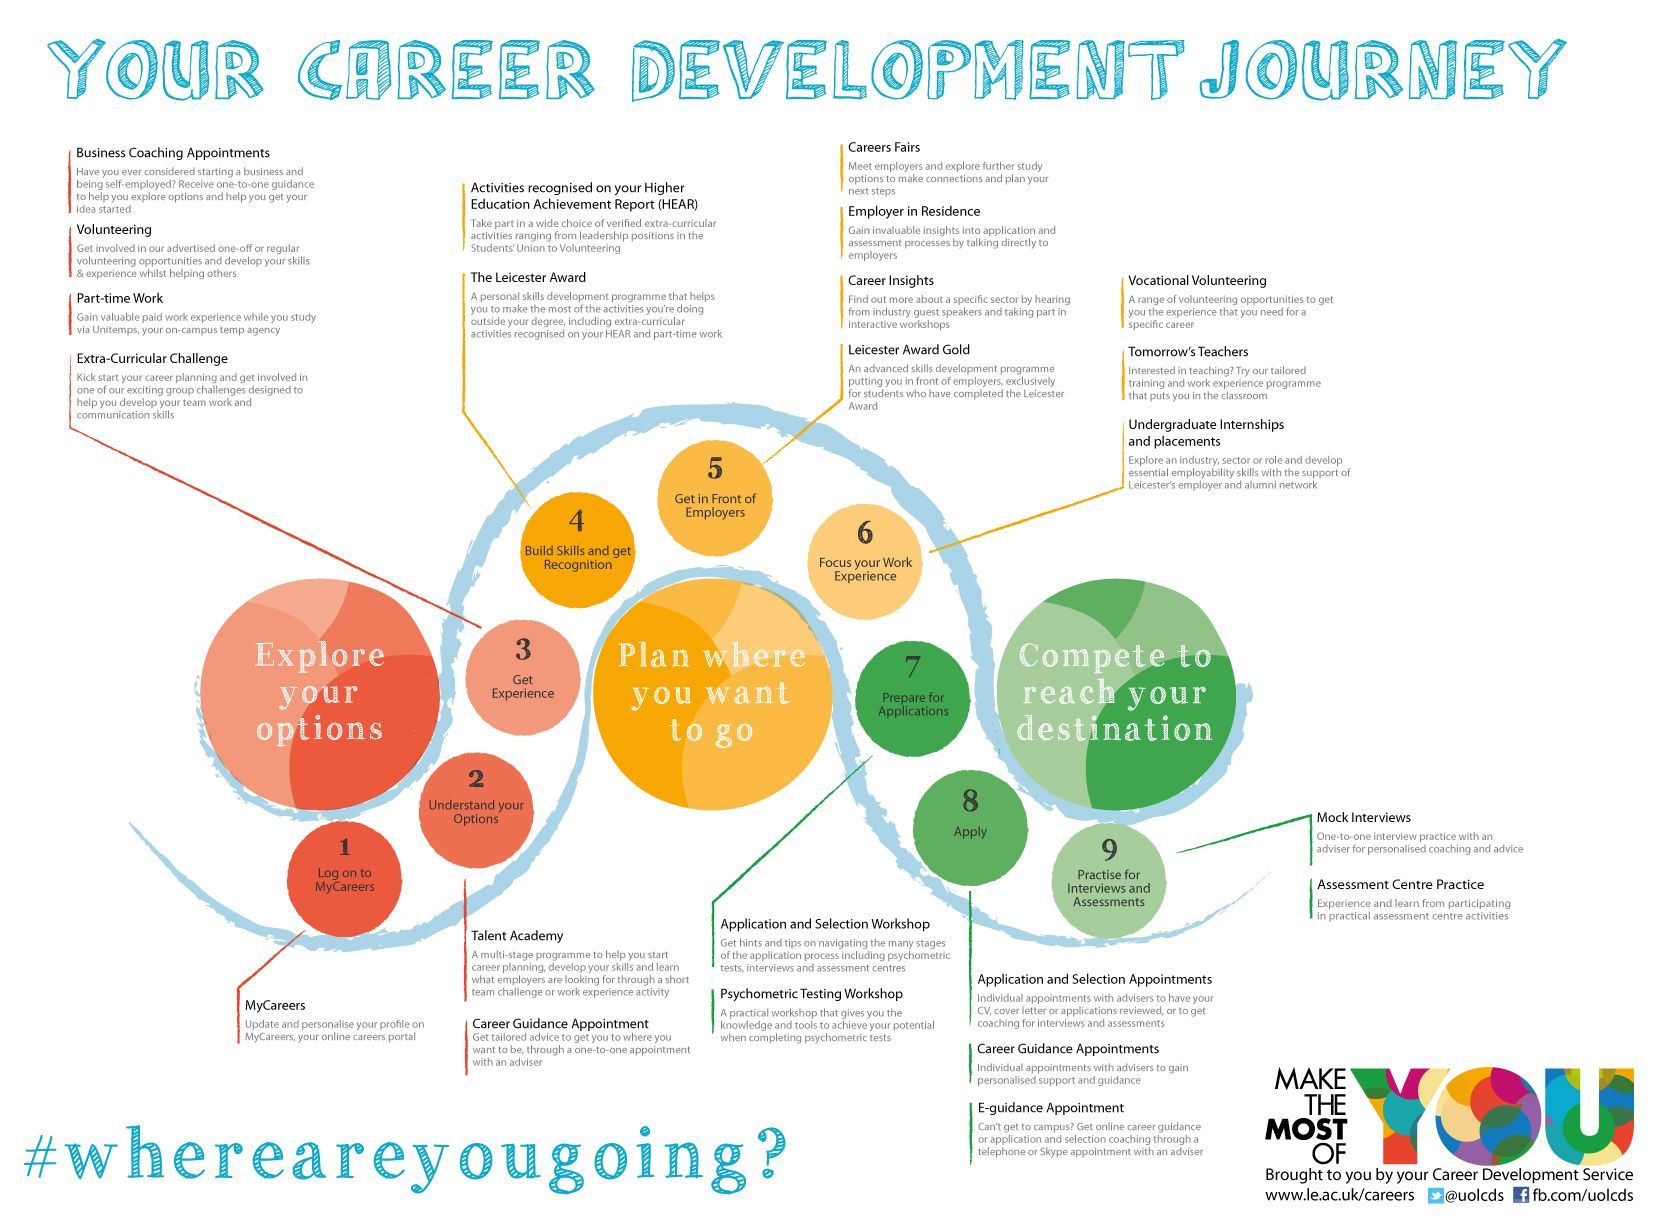 Career Development Journey Map